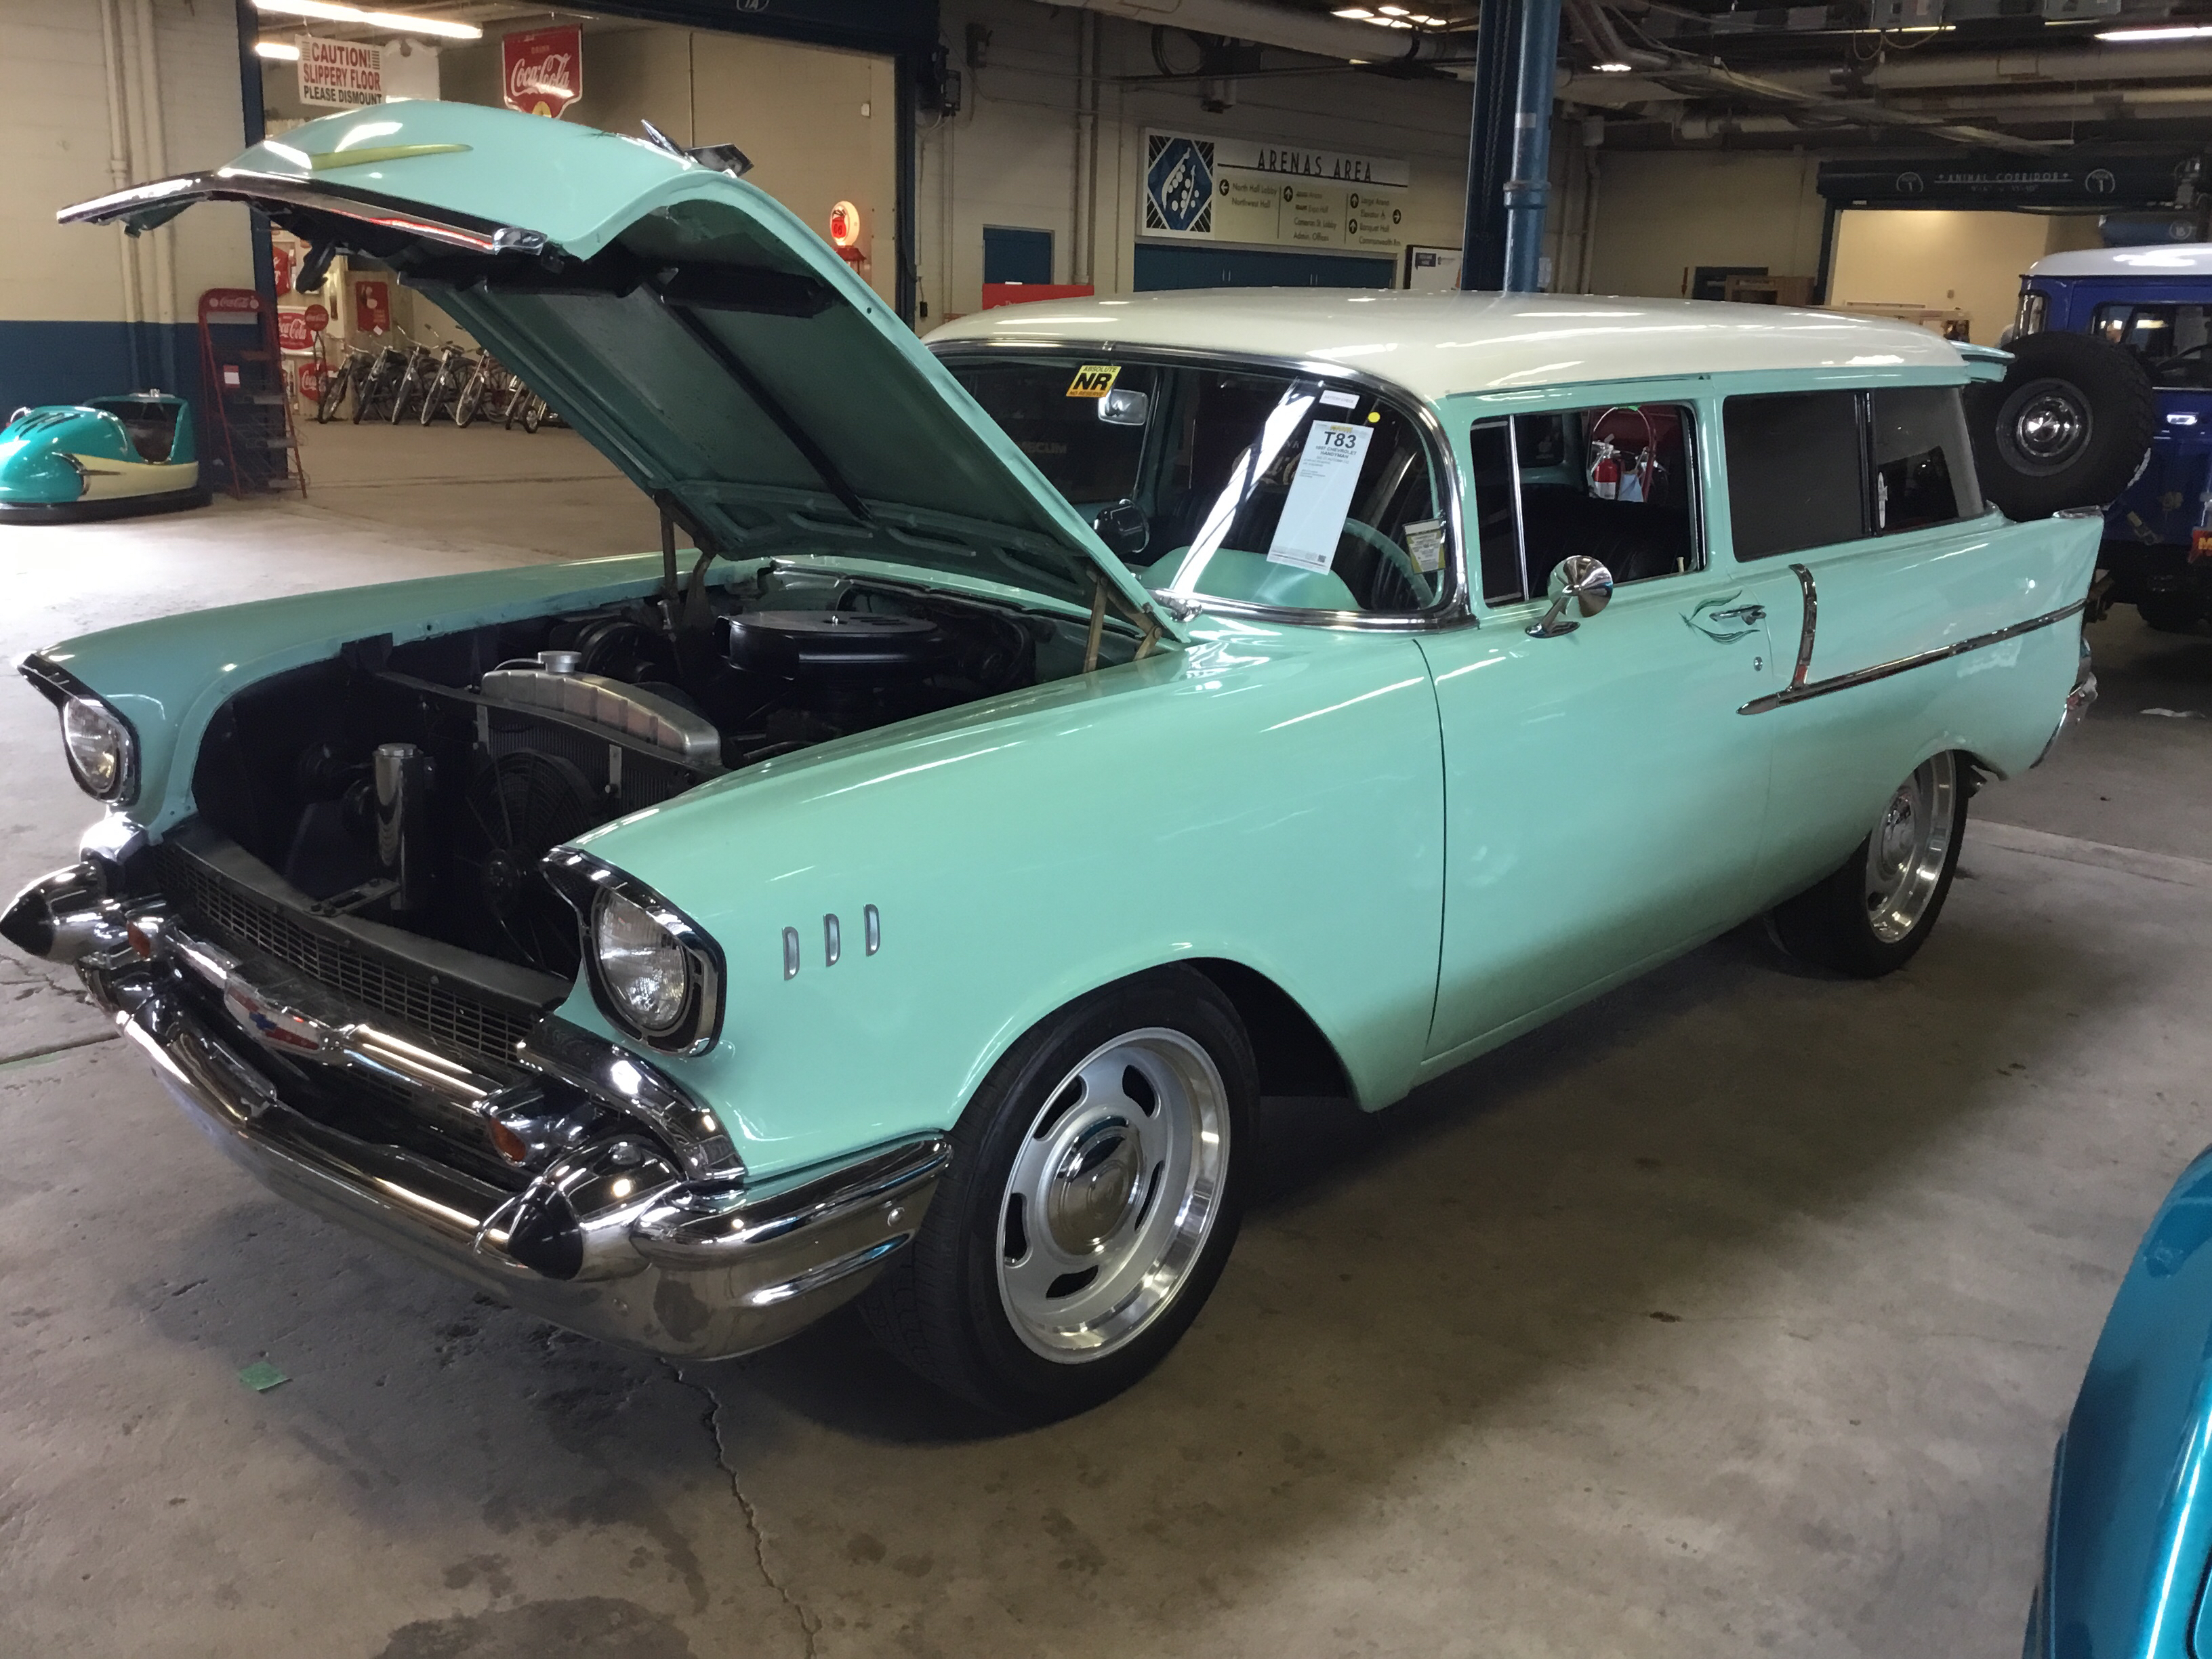 1955 Chevrolet 150 Values | Hagerty Valuation Tool®